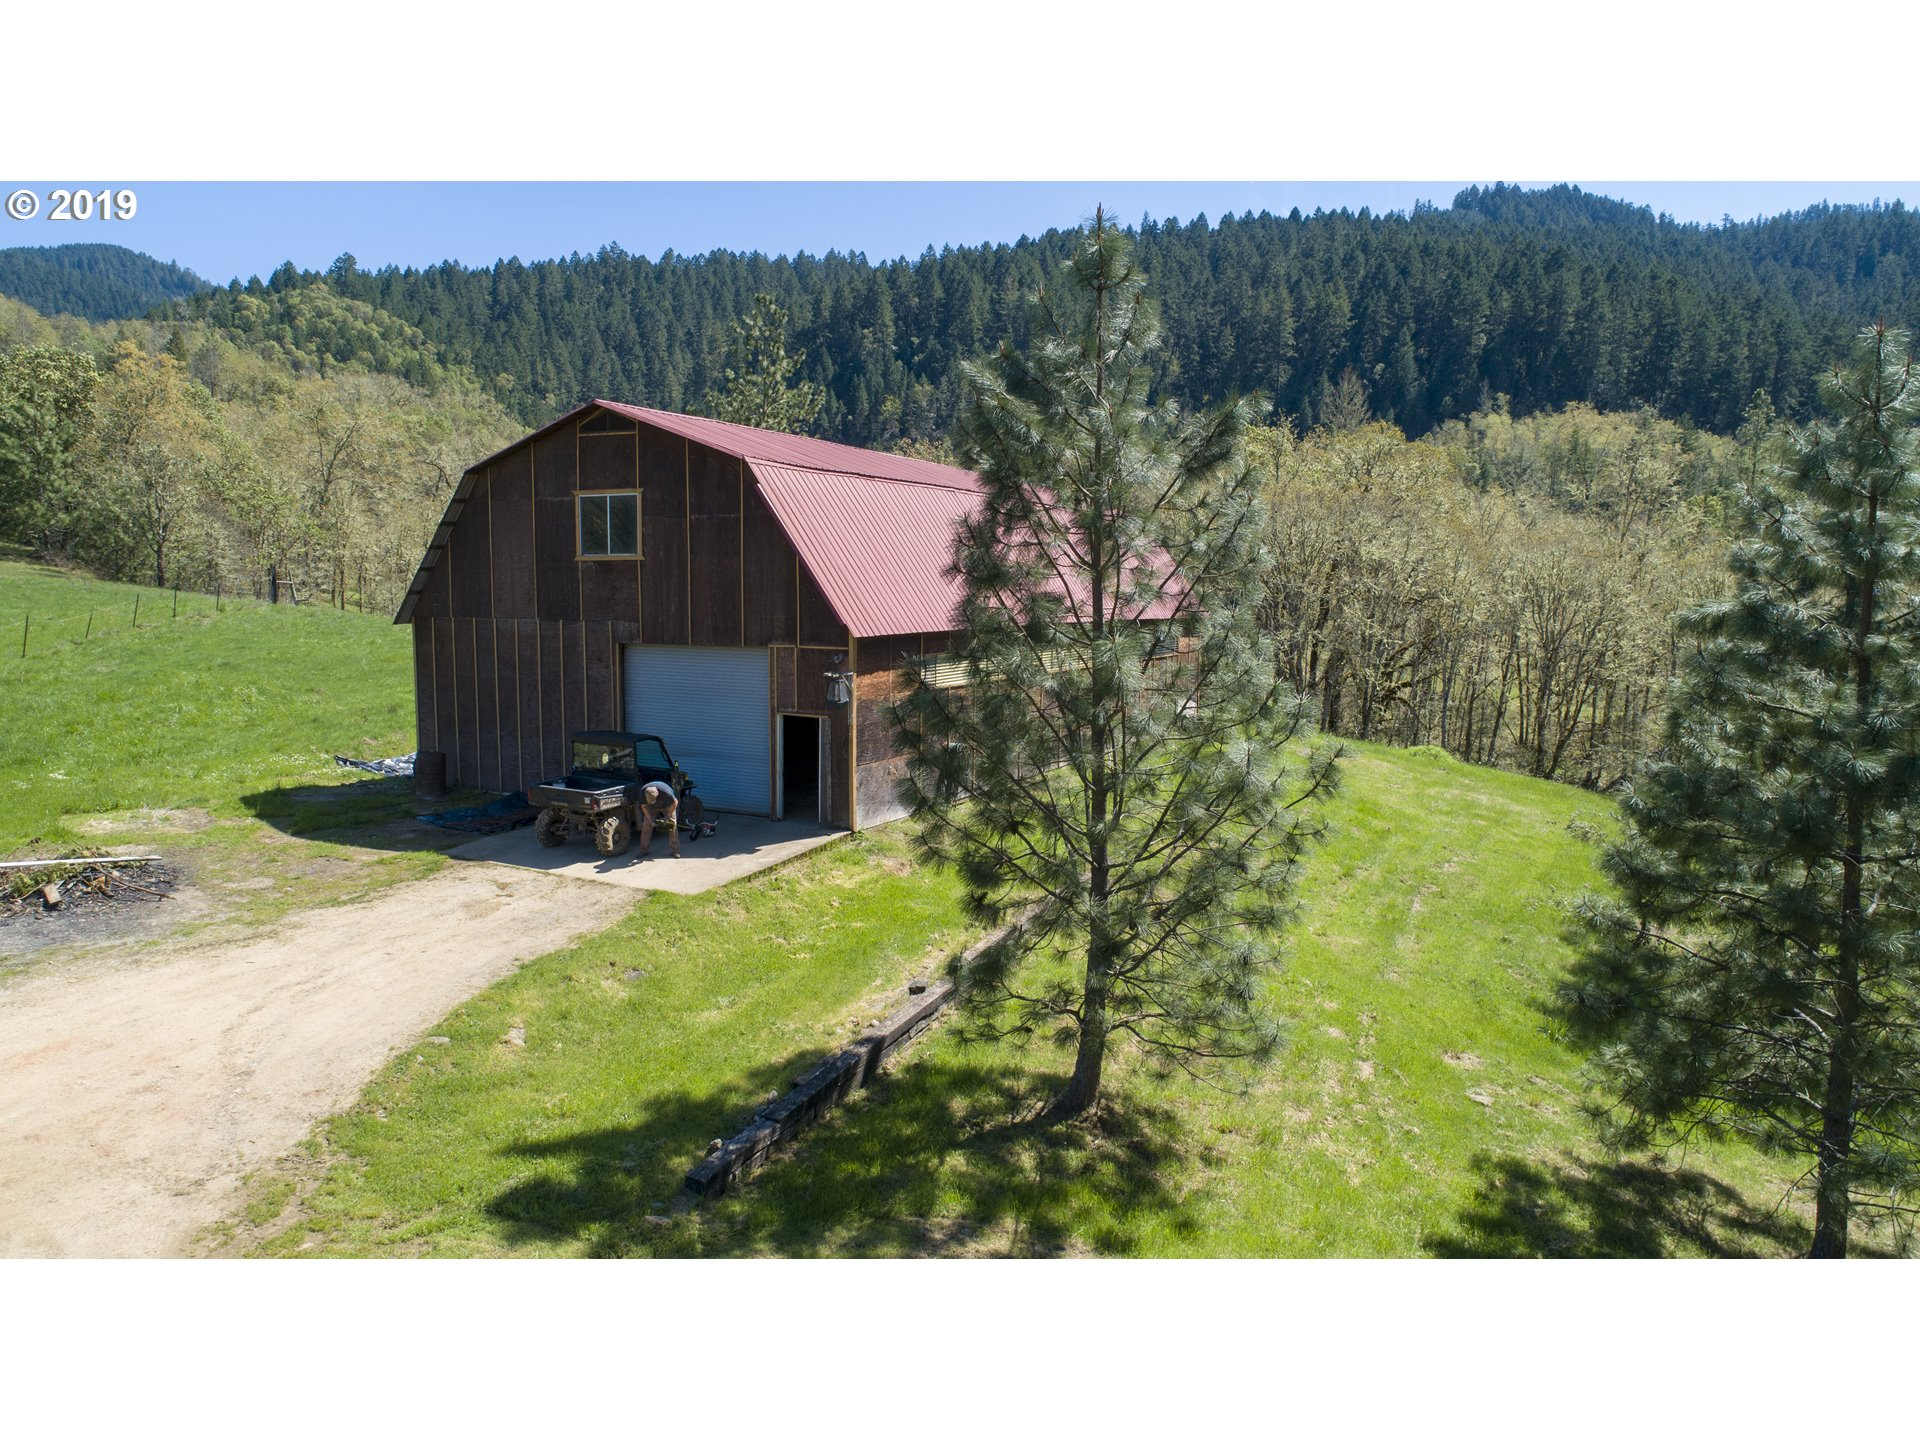 504 COLD WATER RANCH LN Riddle, OR 97469 - MLS #: 18645122